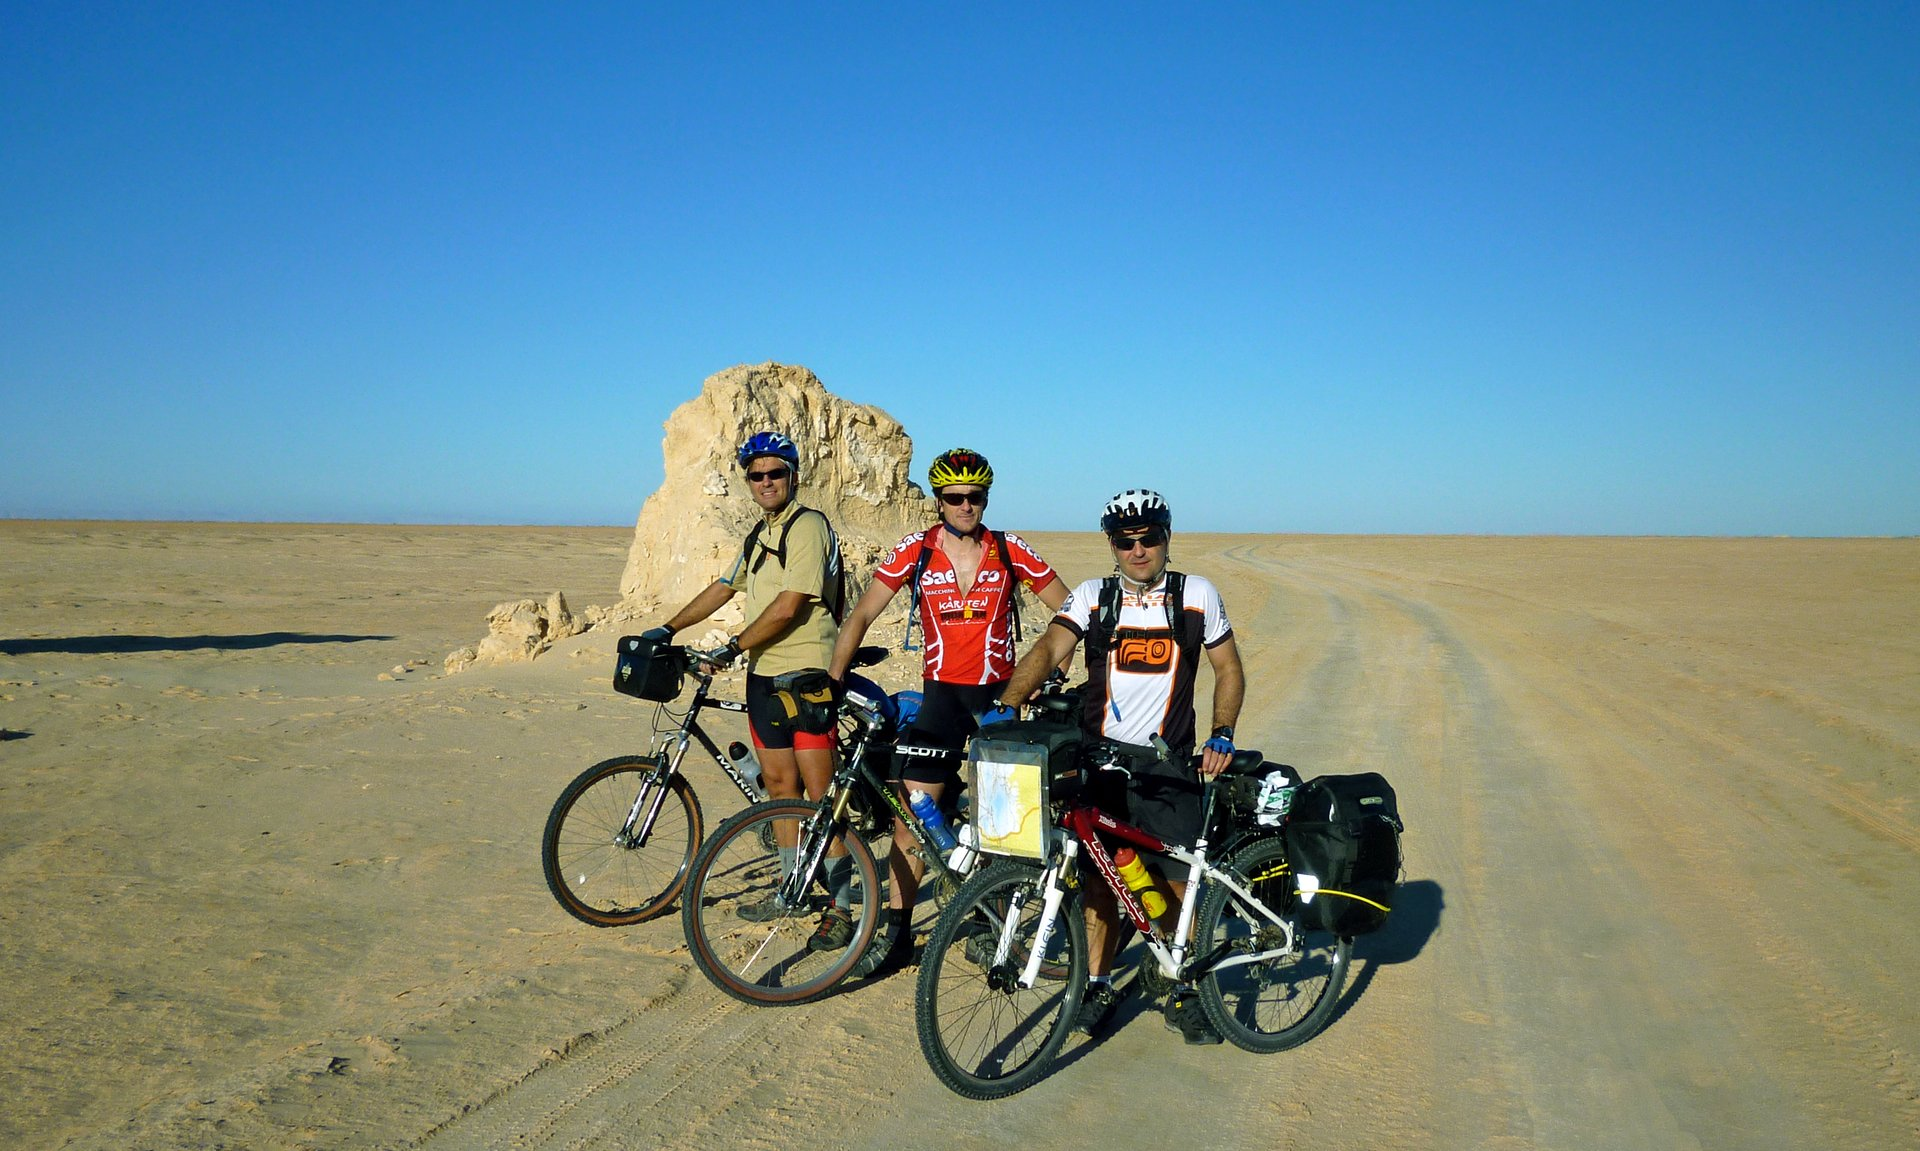 Cycling in Tunisia 2020 - Best Time